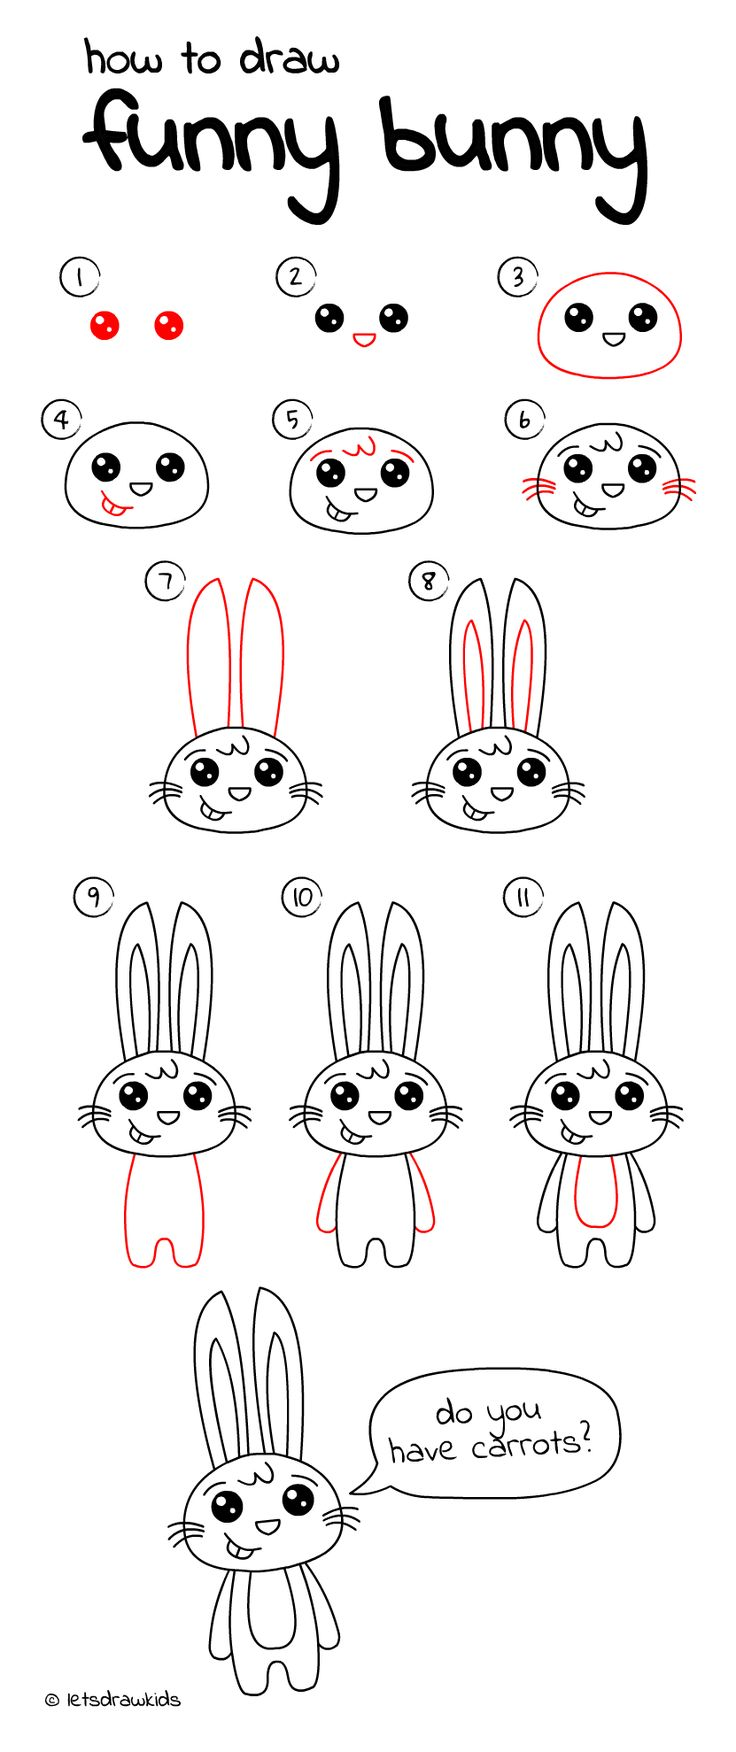 step drawing easy draw bunny drawings funny rabbit simple things cartoon sketch activities easter let perfect cool sketches steps unicorn